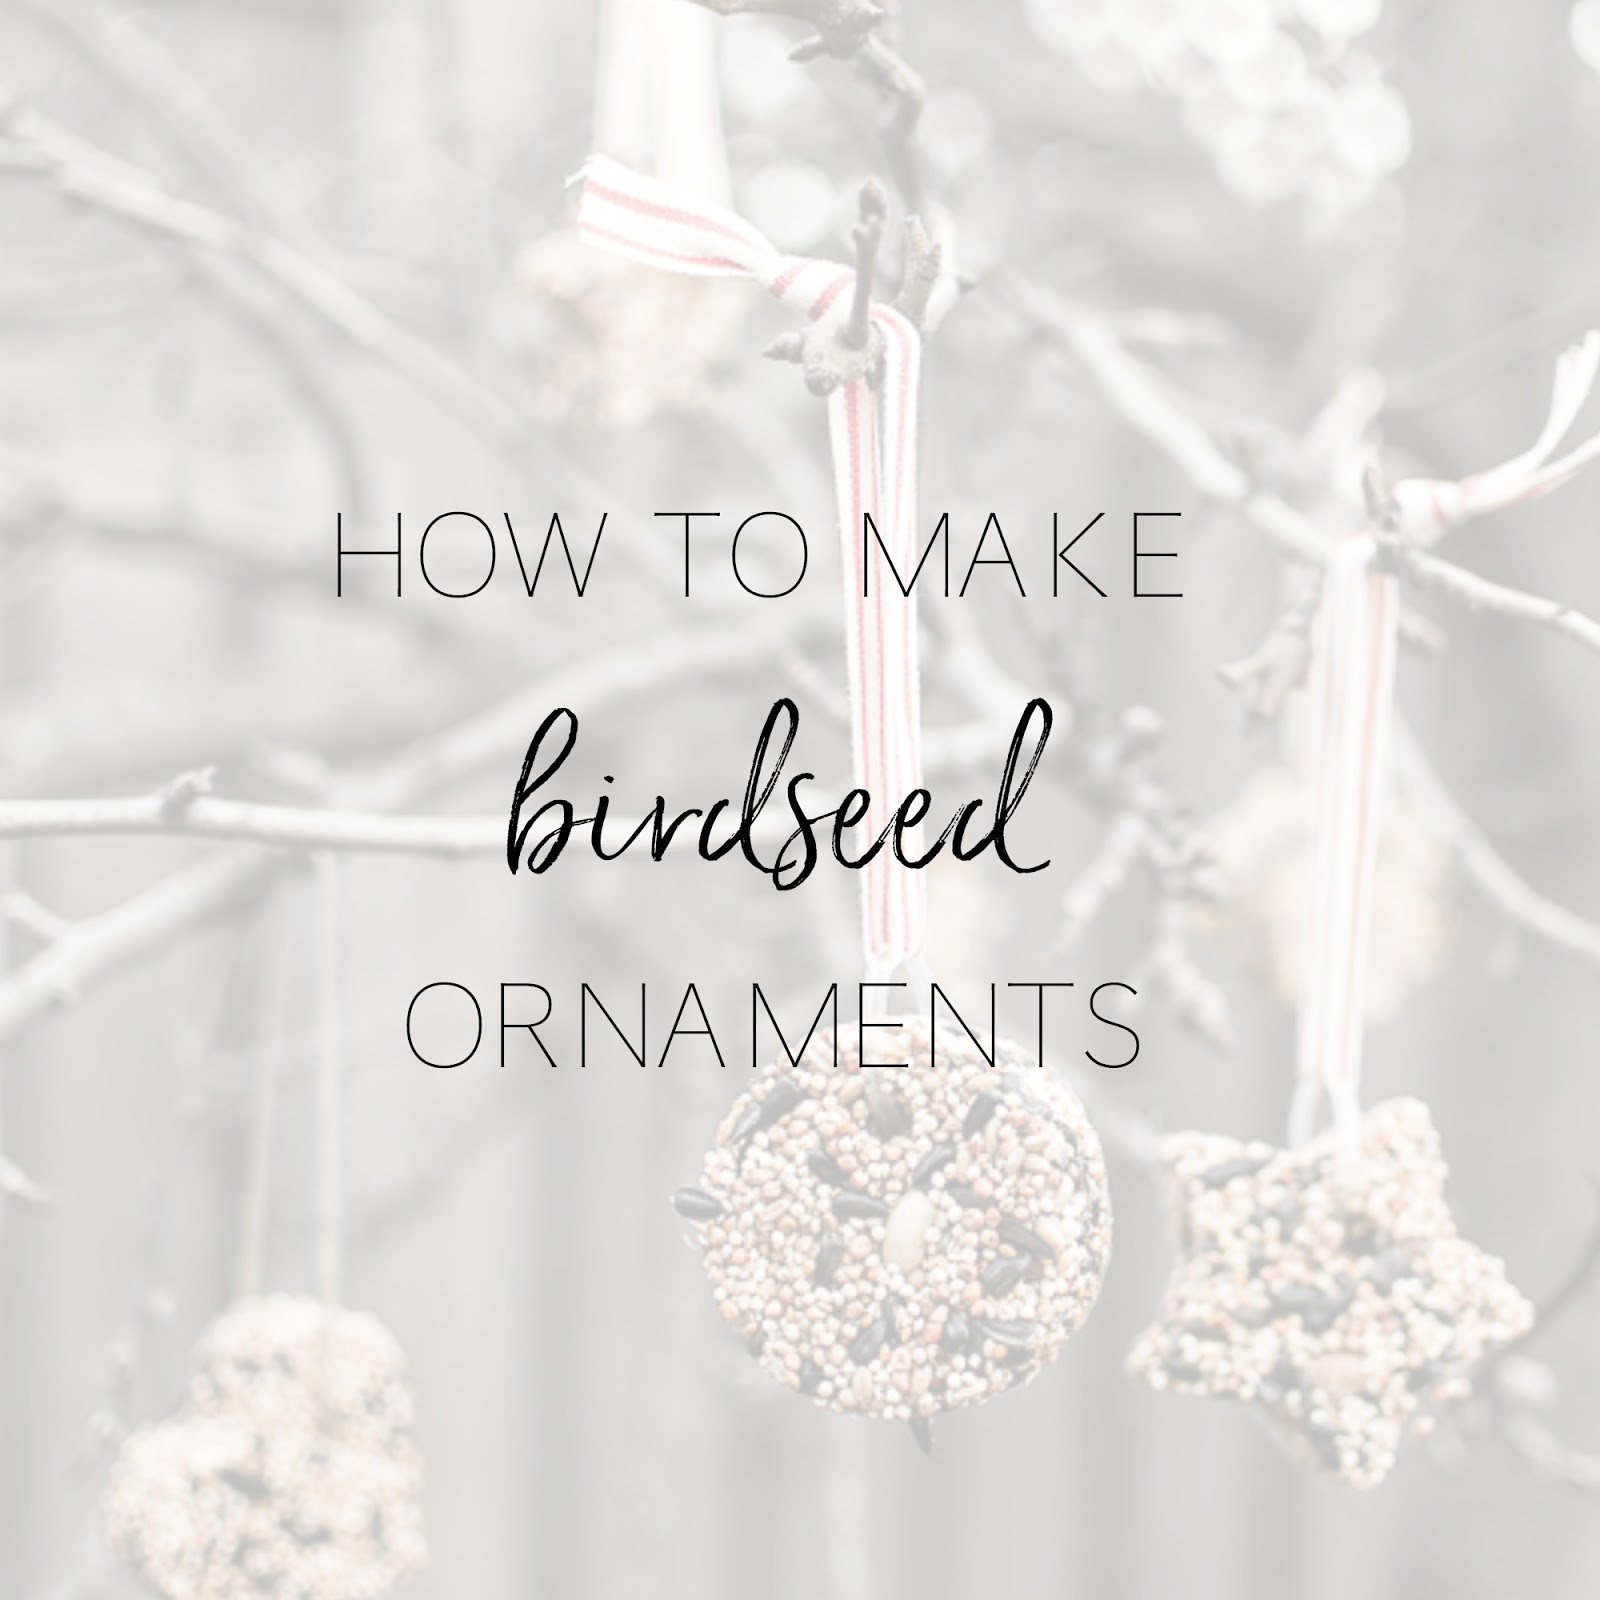 How to make birdseed ornaments personally andrea how to make how to make birdseed ornaments birds will love these pretty ornaments decorating your backyard trees solutioingenieria Image collections